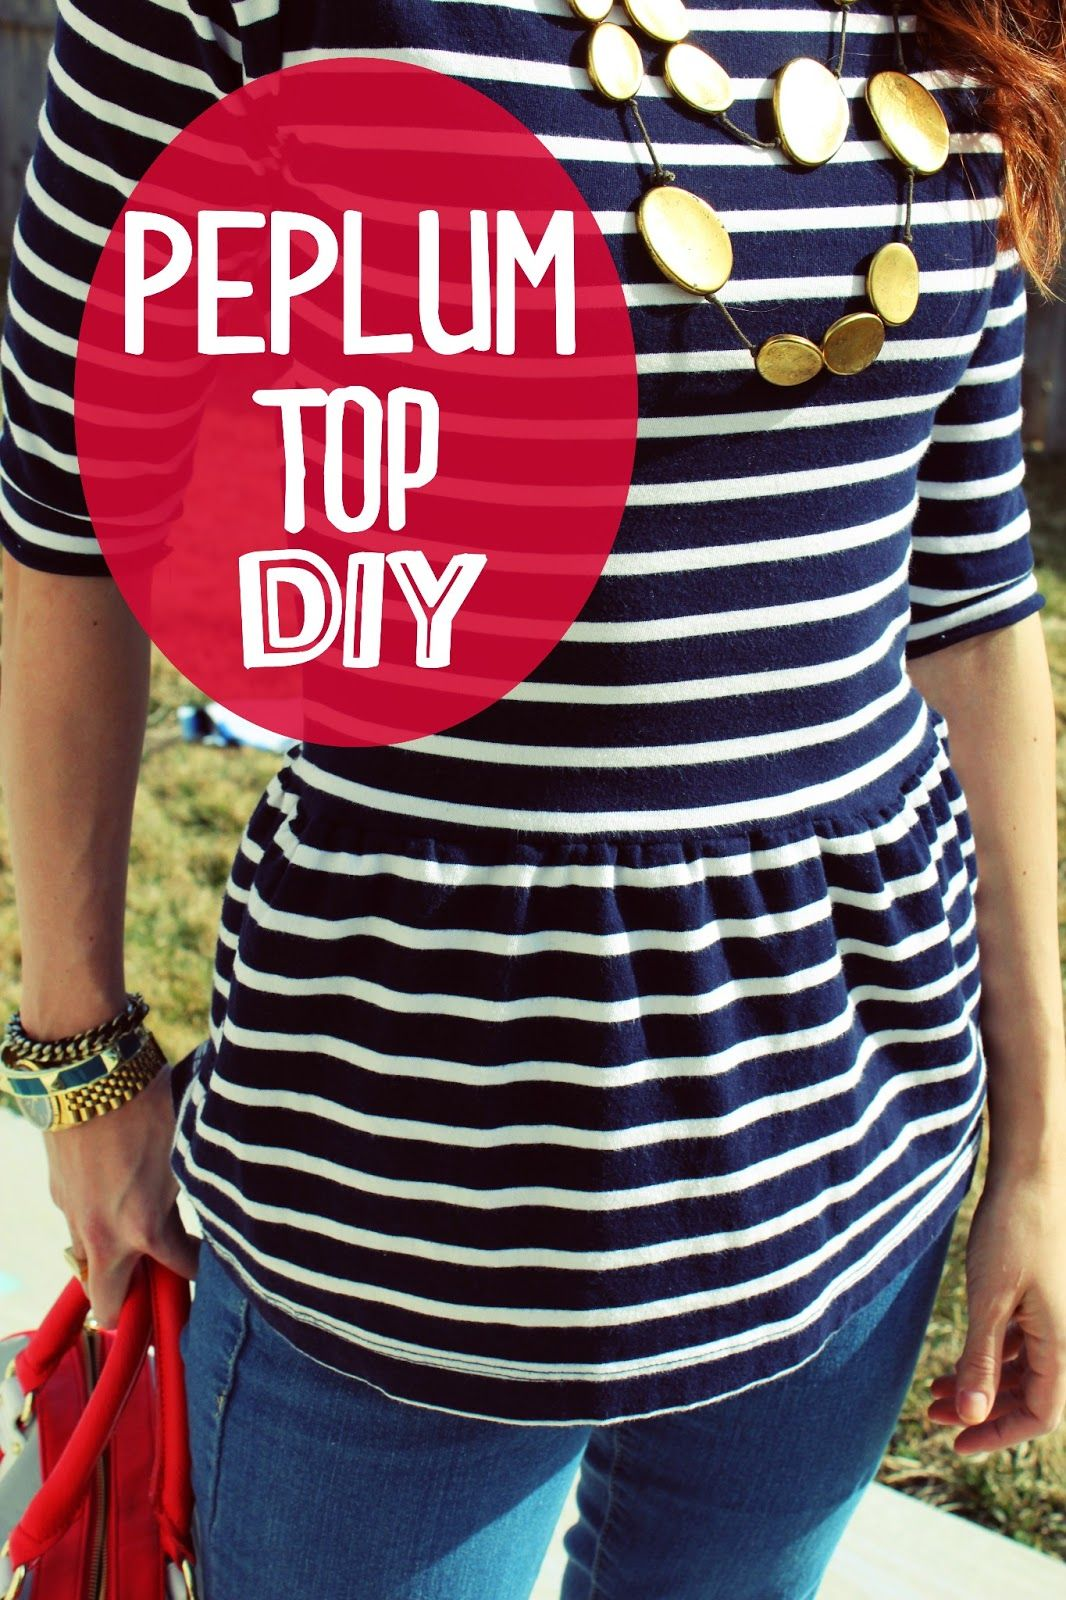 THE SISTERS FOUR: The Easiest (laziest) Peplum Top